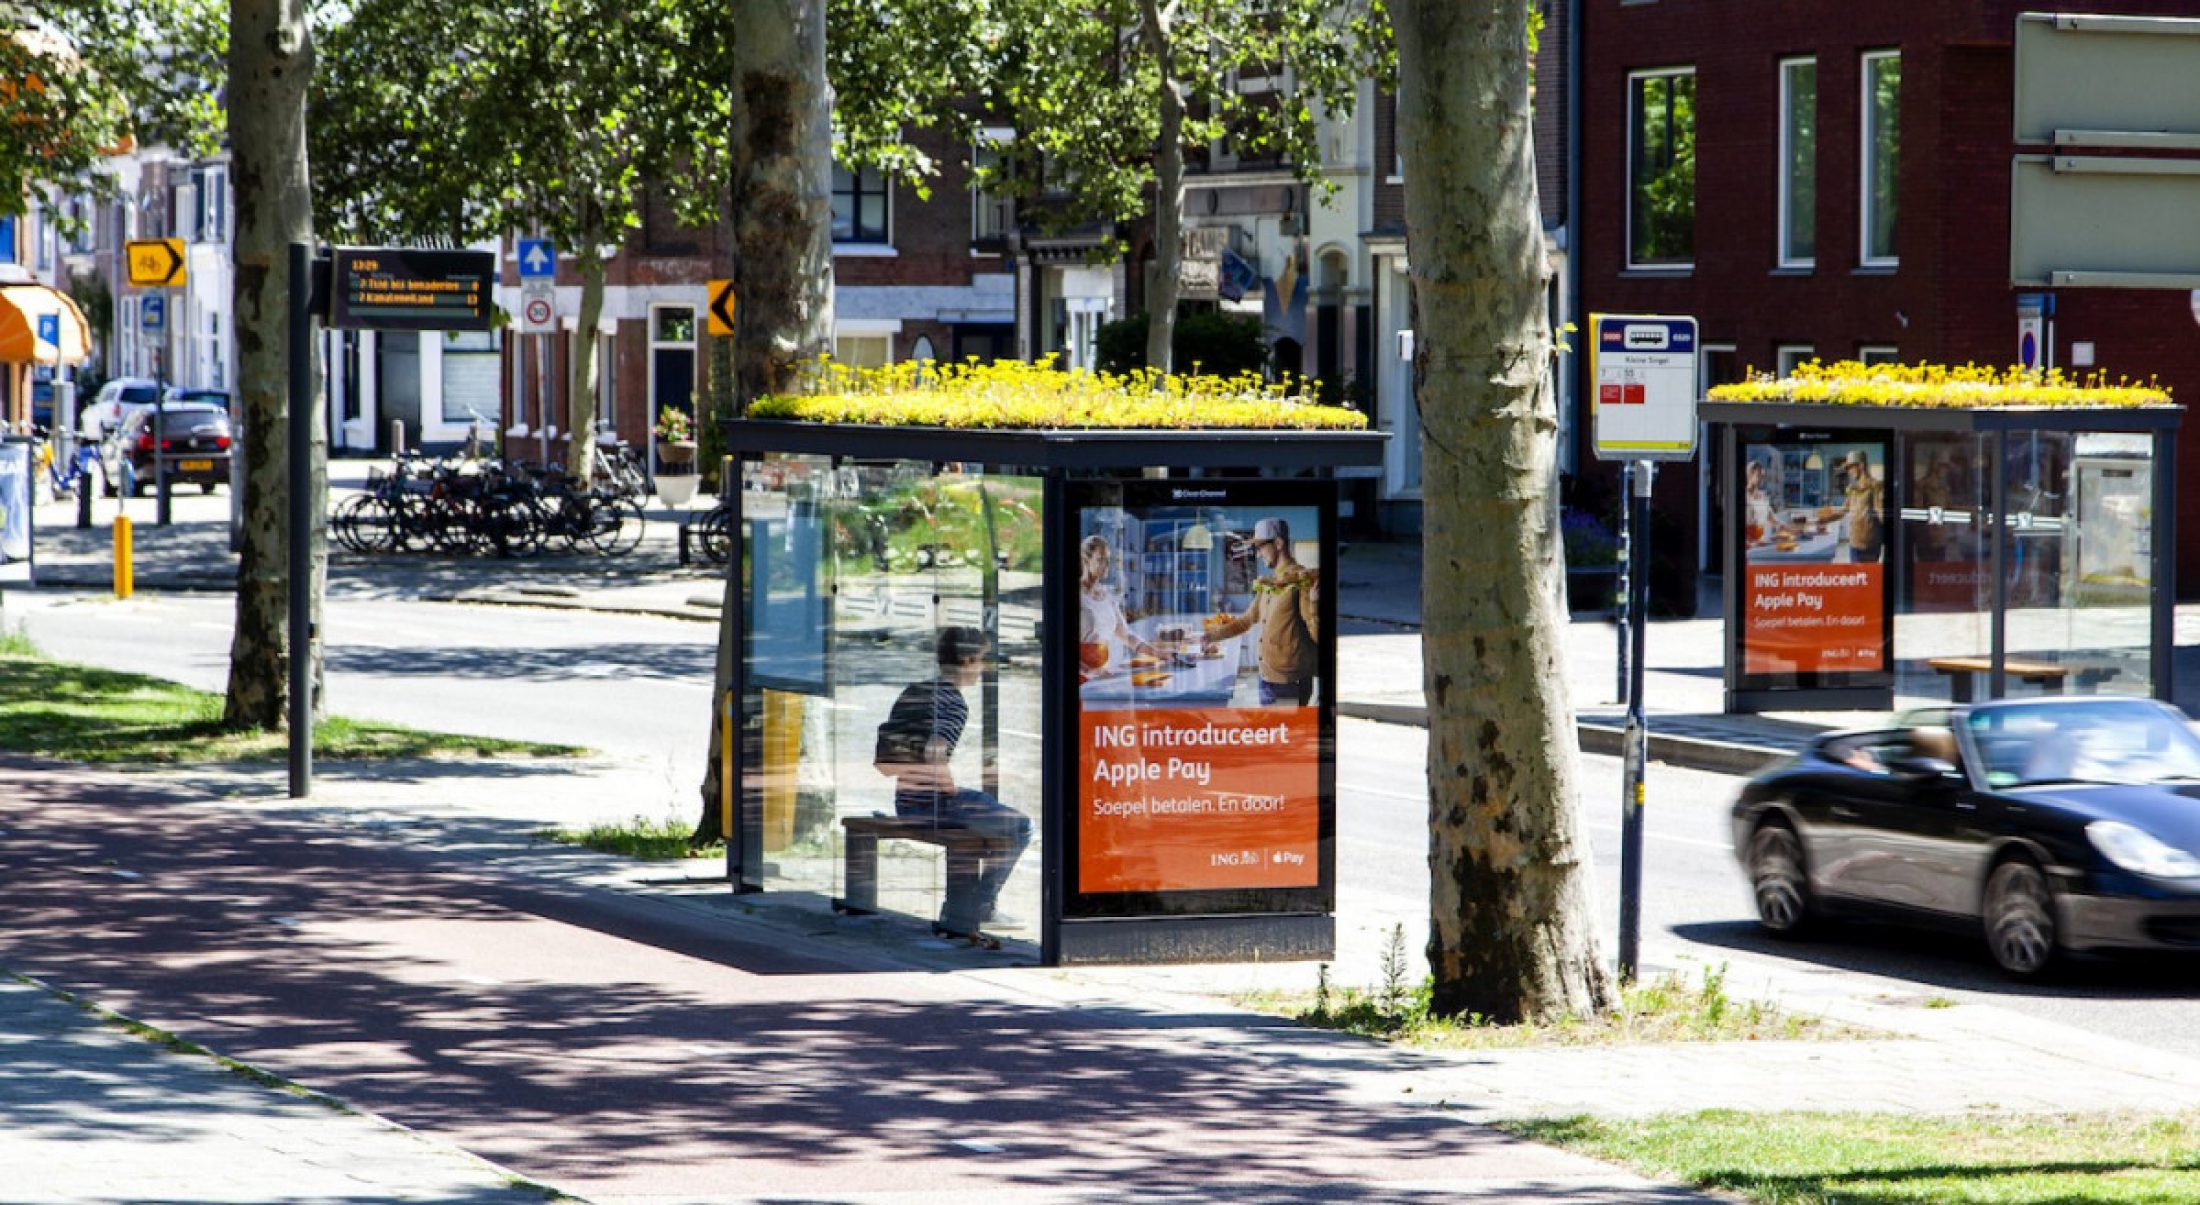 Utrecht has turned bus stop roofs into bee gardens